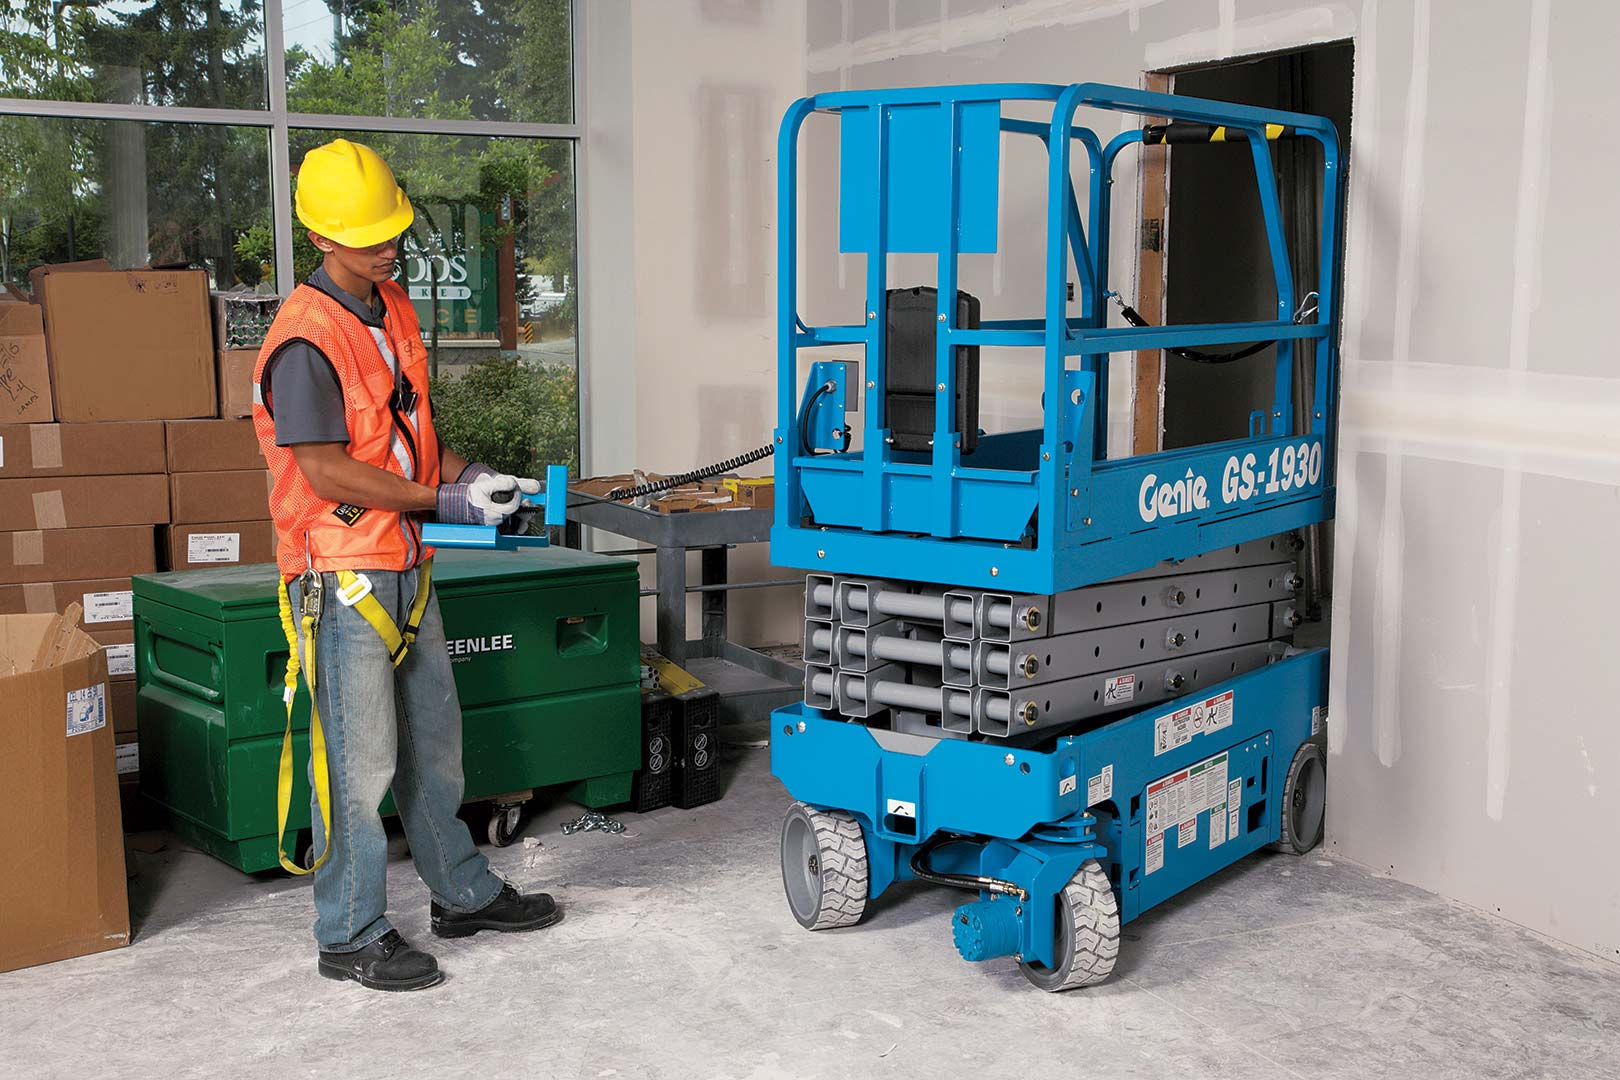 Scissor Lift Rentals | Get Your Scissor Lift Rental at